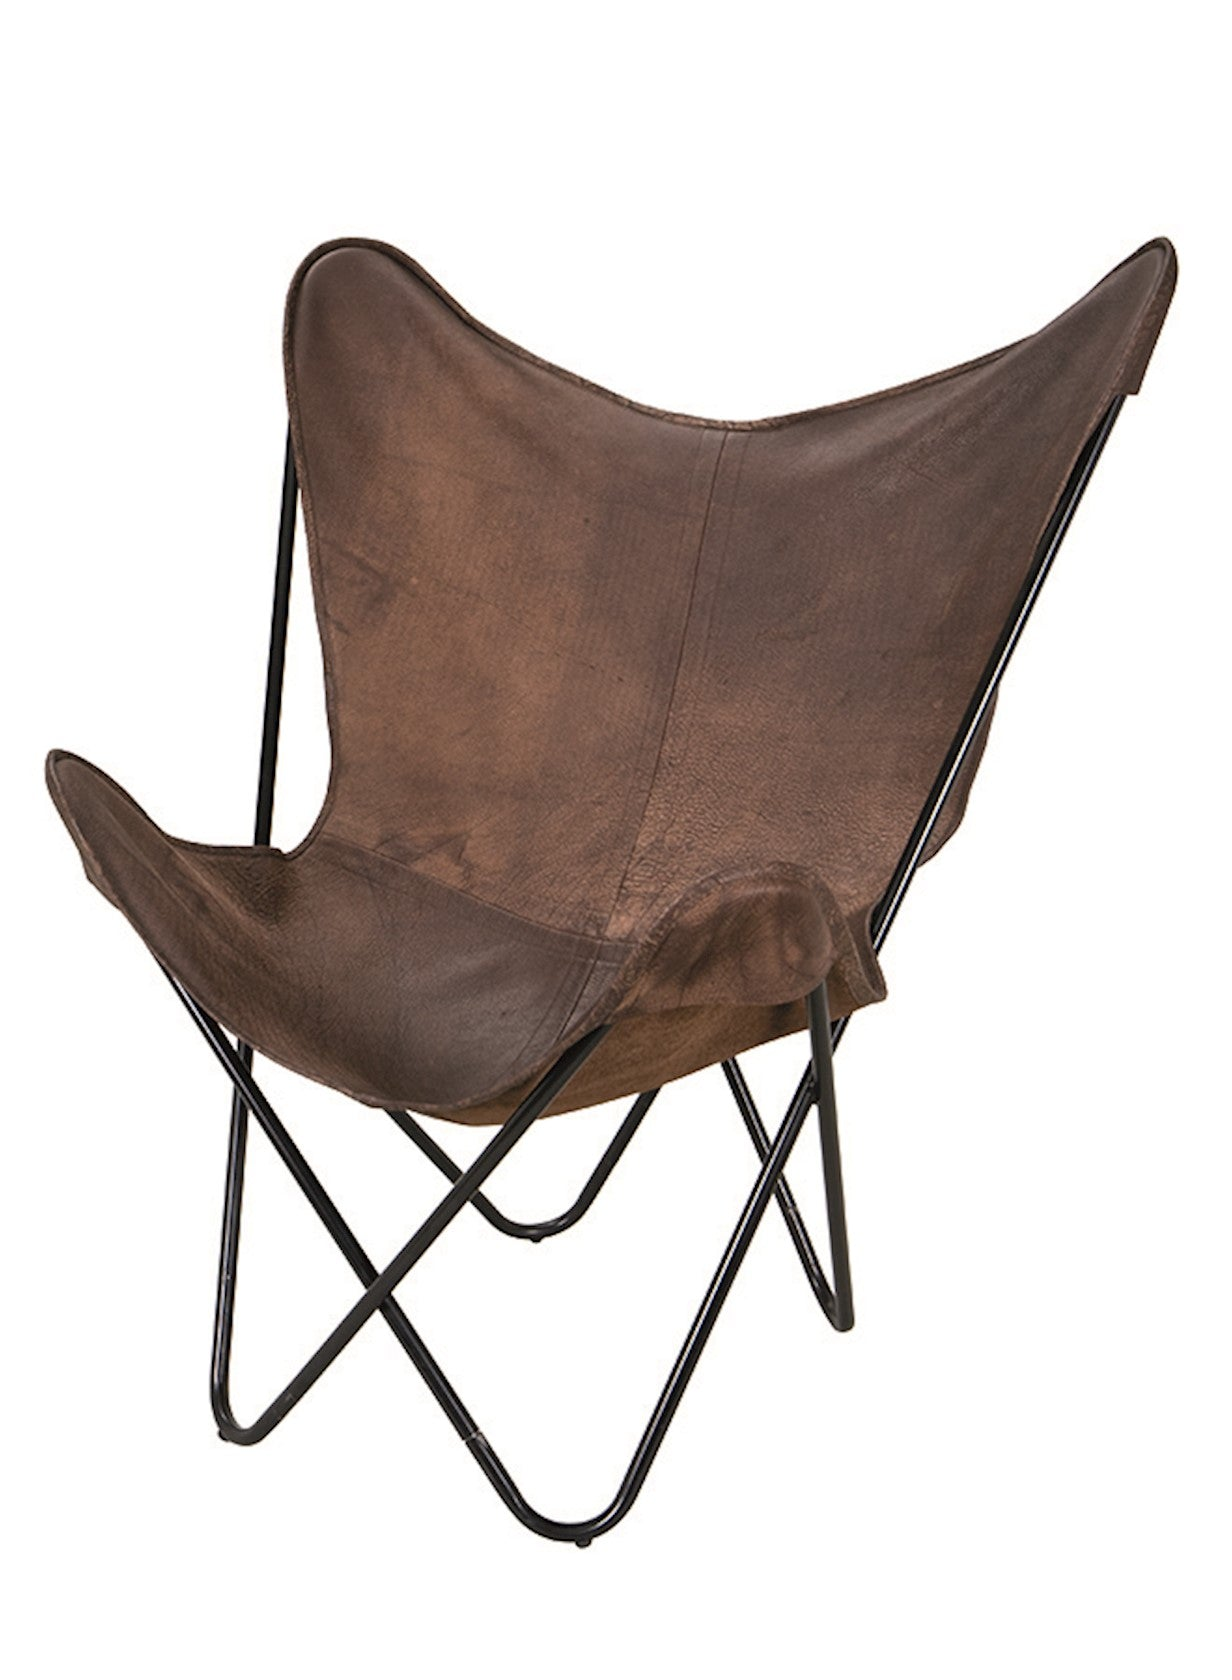 'BUTTERFLY CHAIR' COVER - Chairs - SCAPA HOME - SCAPA HOME OFFICIAL